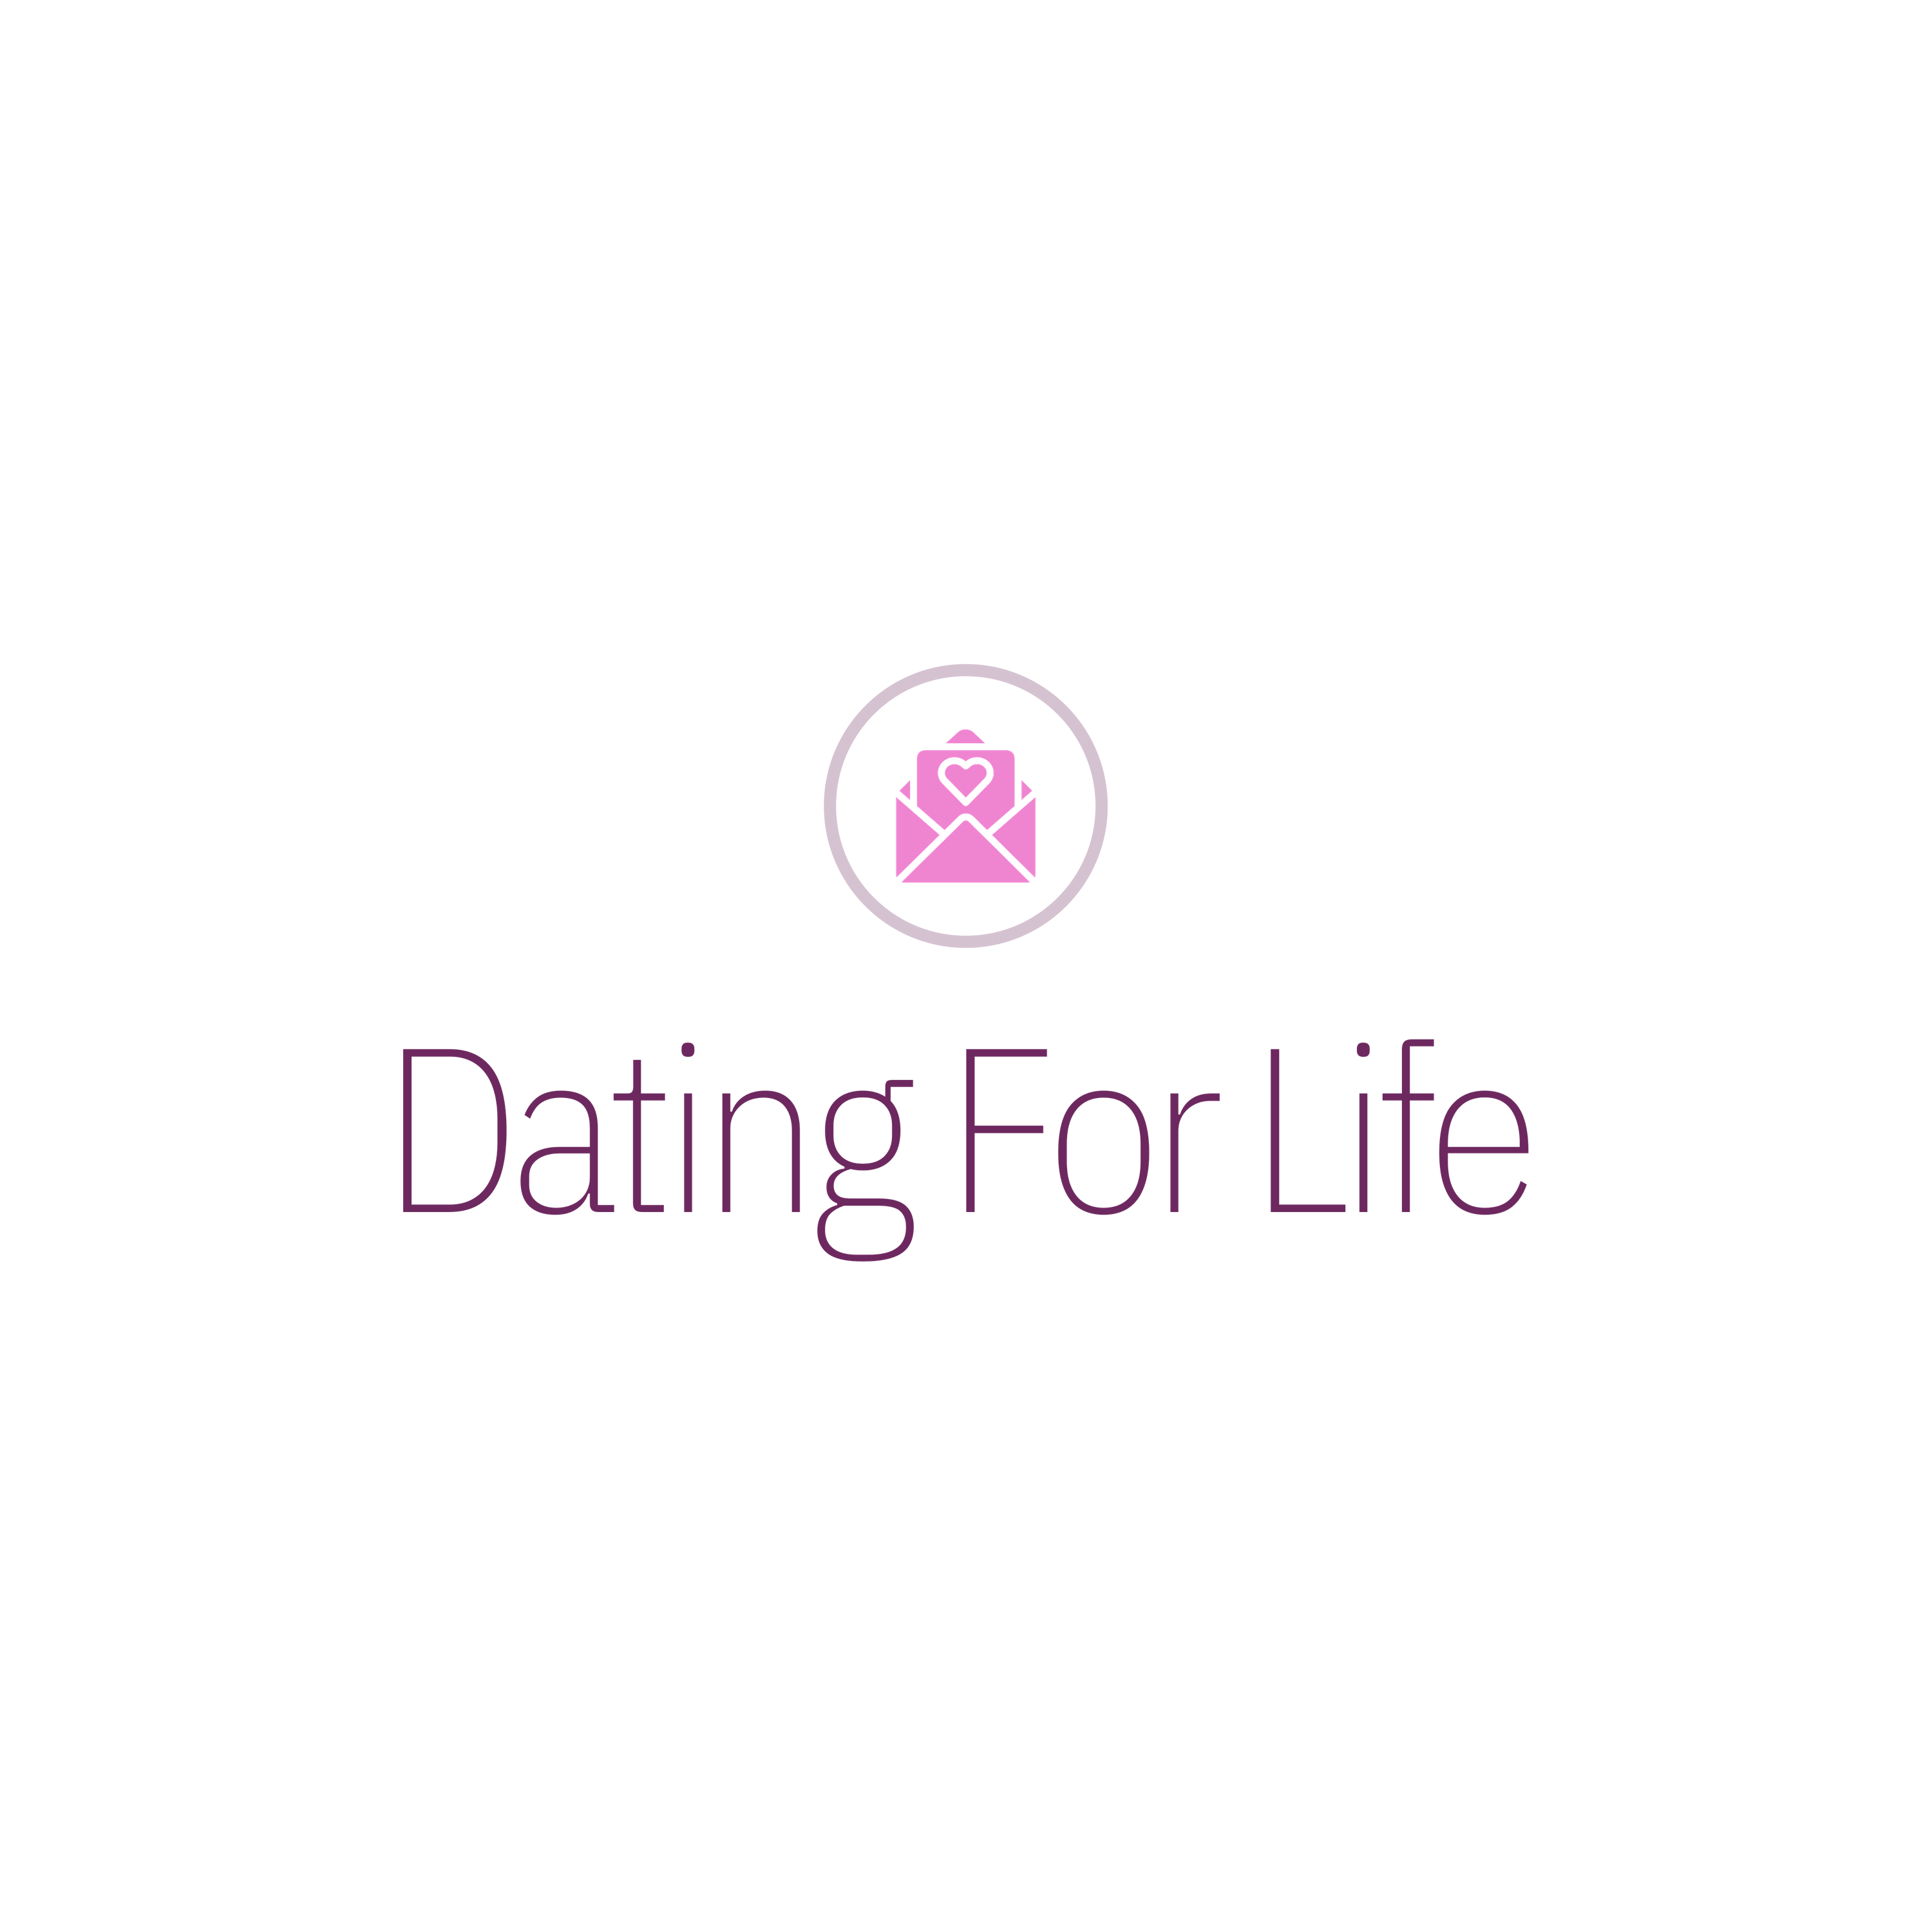 Dating For Life